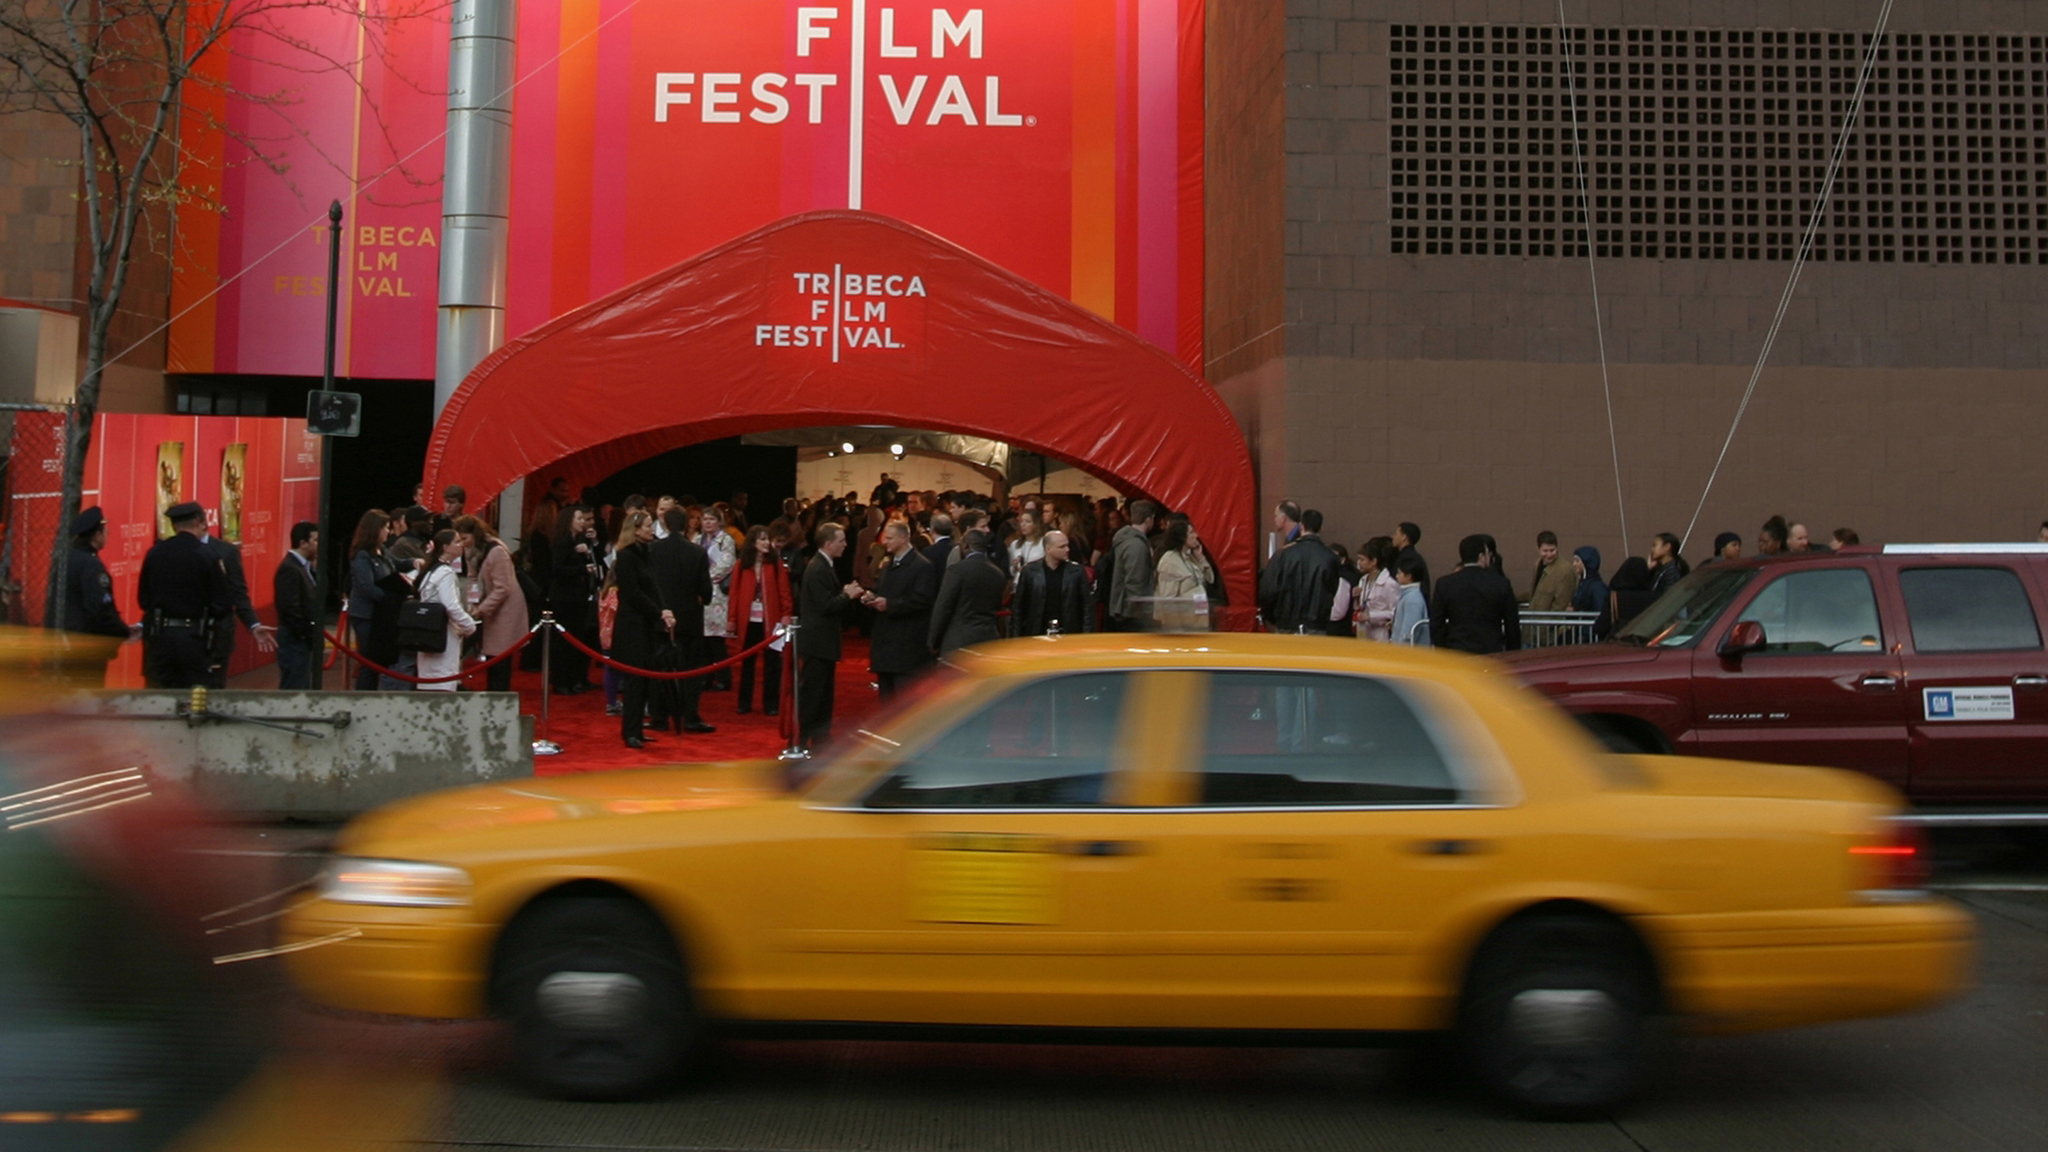 Correctly, Tribeca Film Festival pulls its anti-vax doc from the lineup